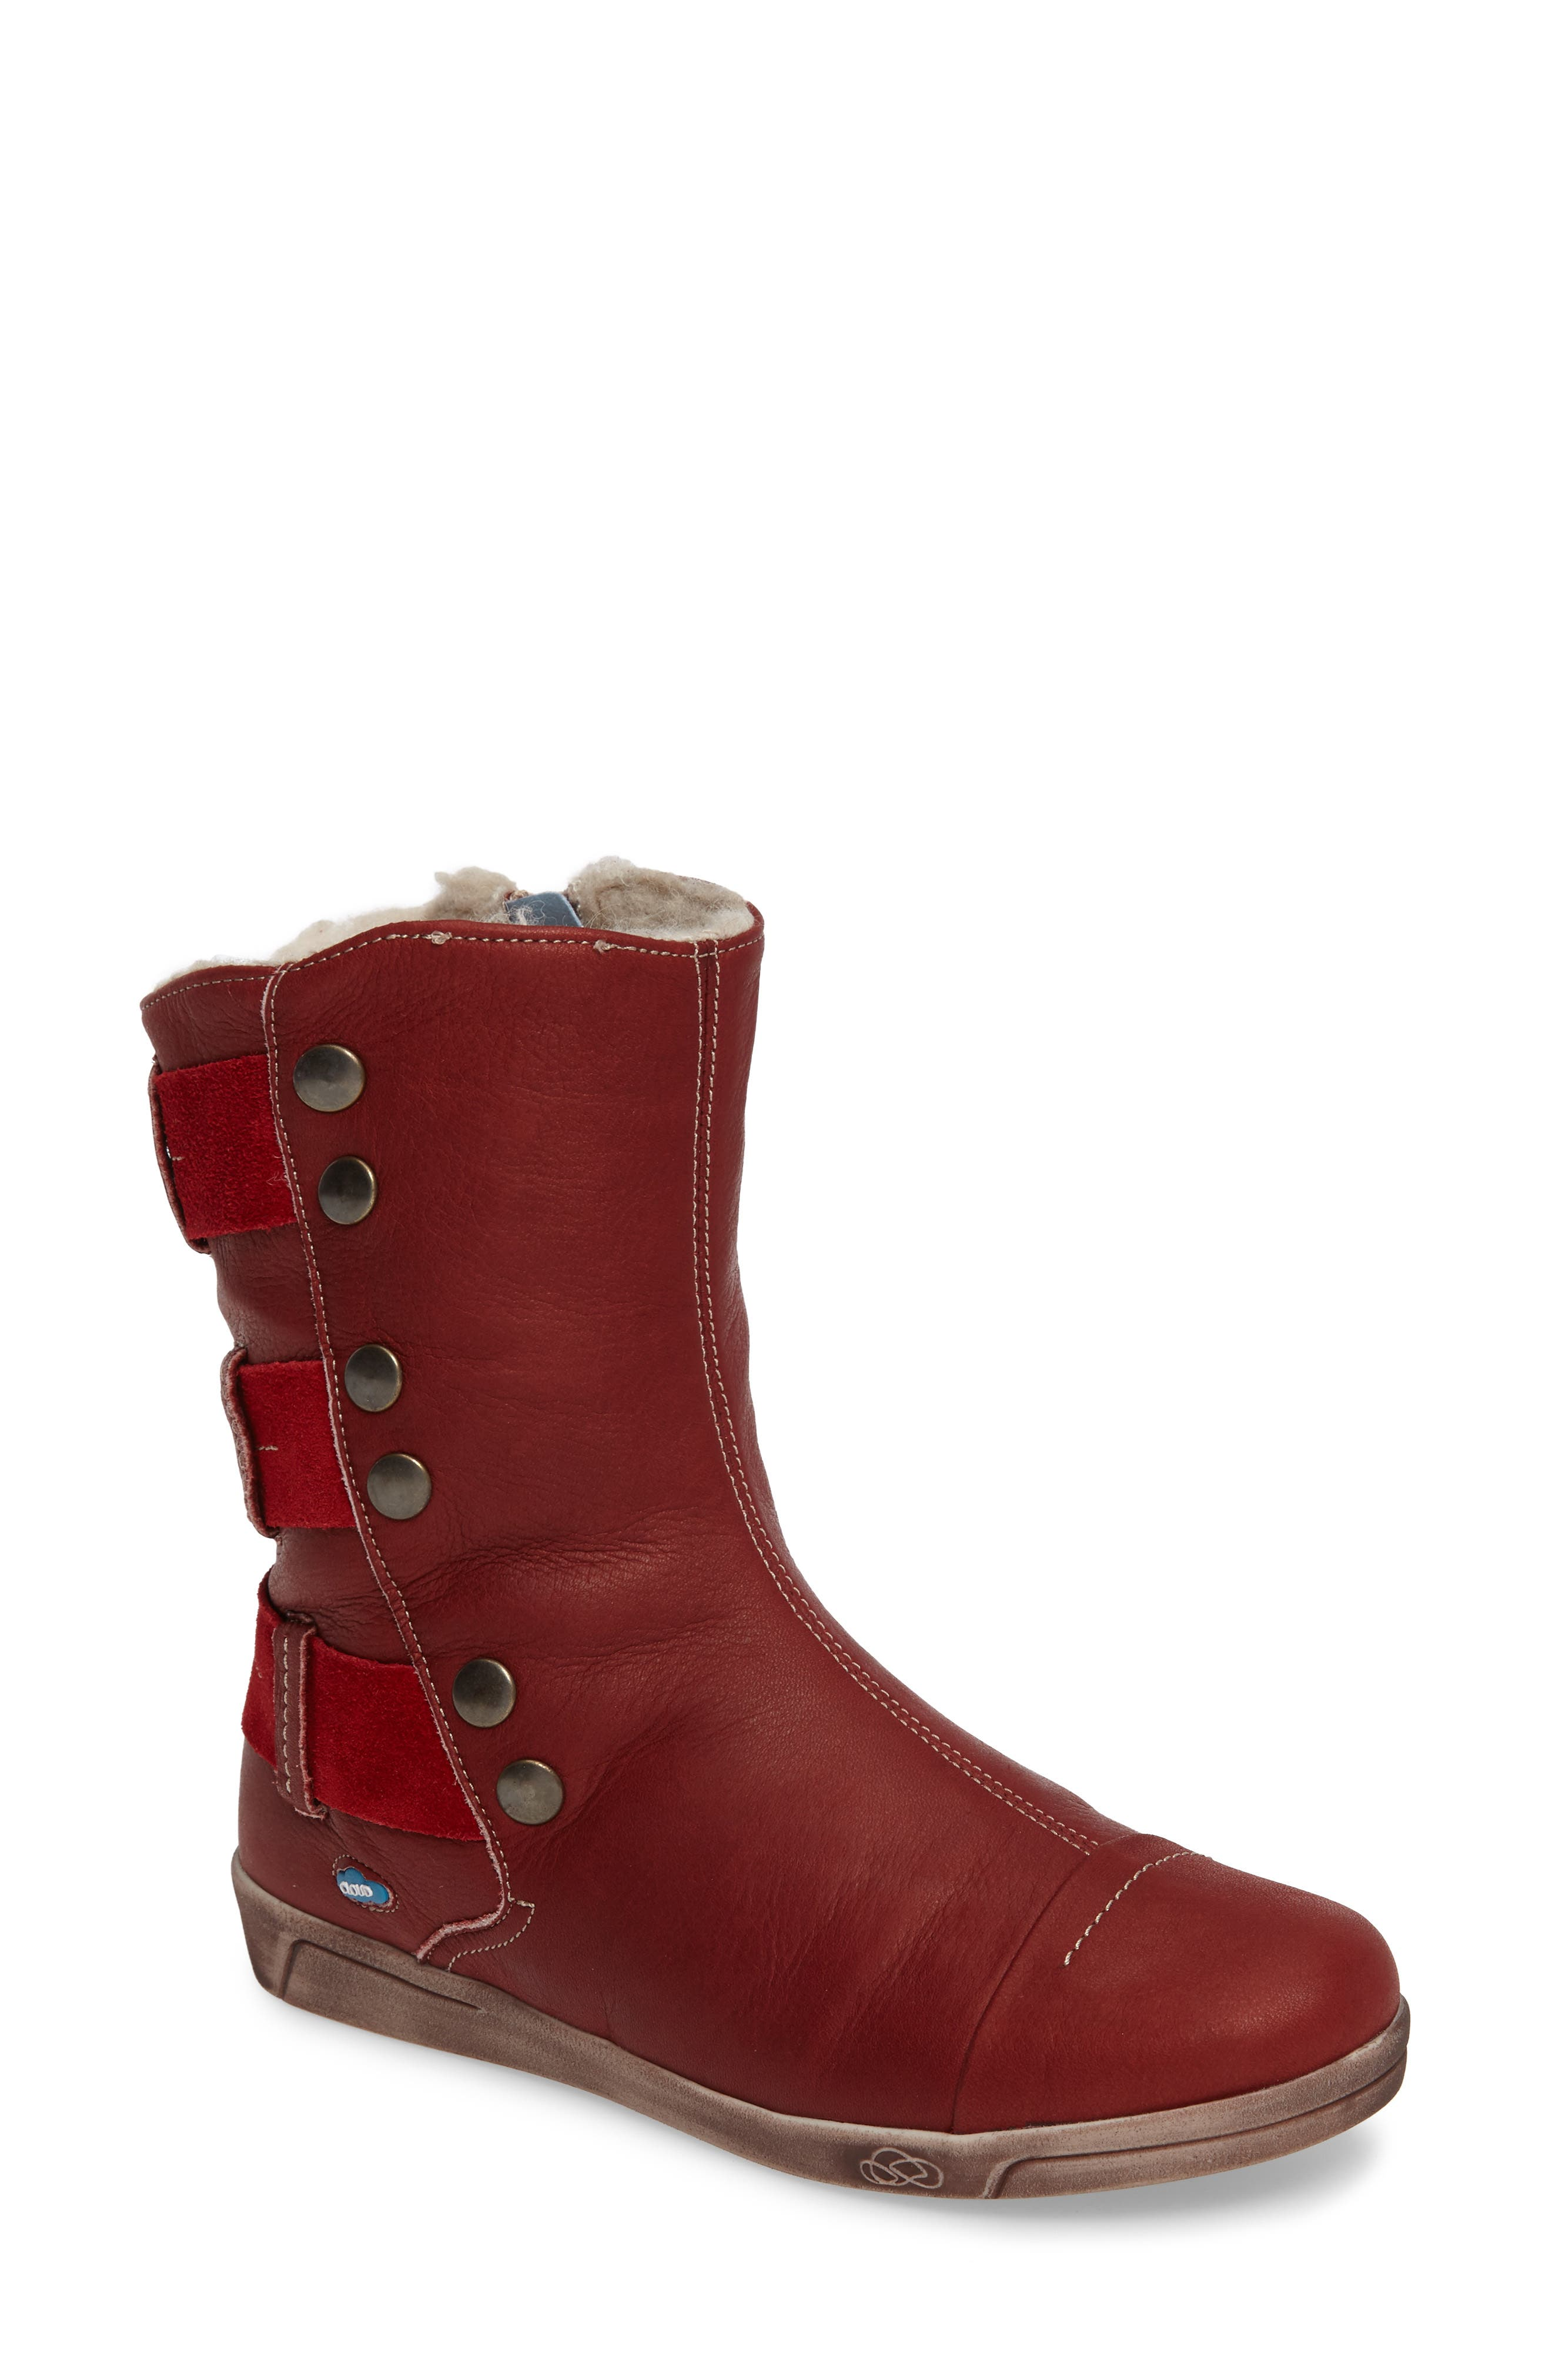 Amber Wool Lined Bootie,                             Main thumbnail 1, color,                             Red Leather